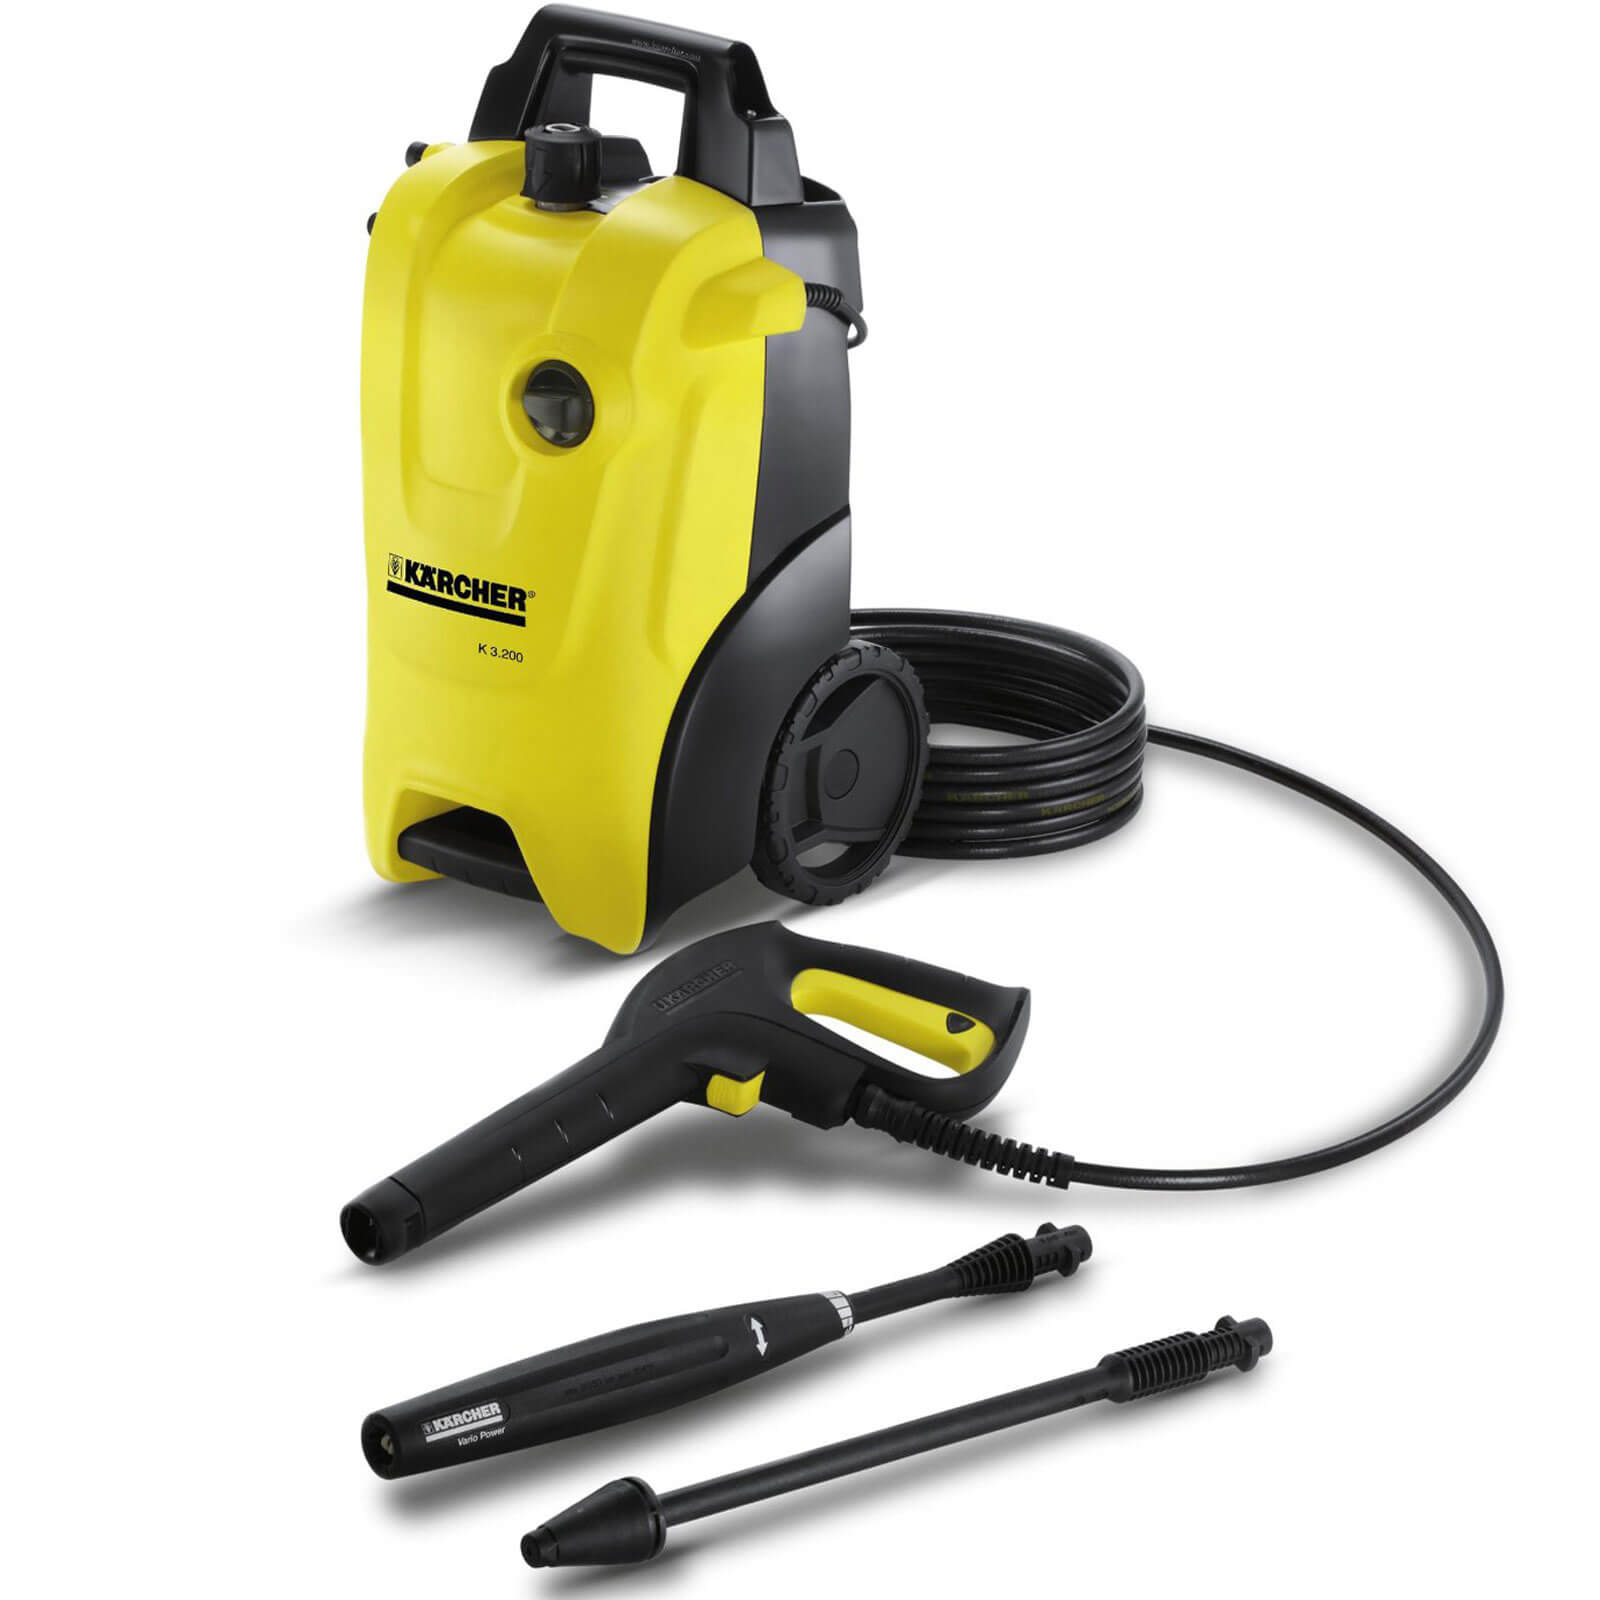 Zzz karcher compact water cooled pressure washer - Karcher k3 home ...